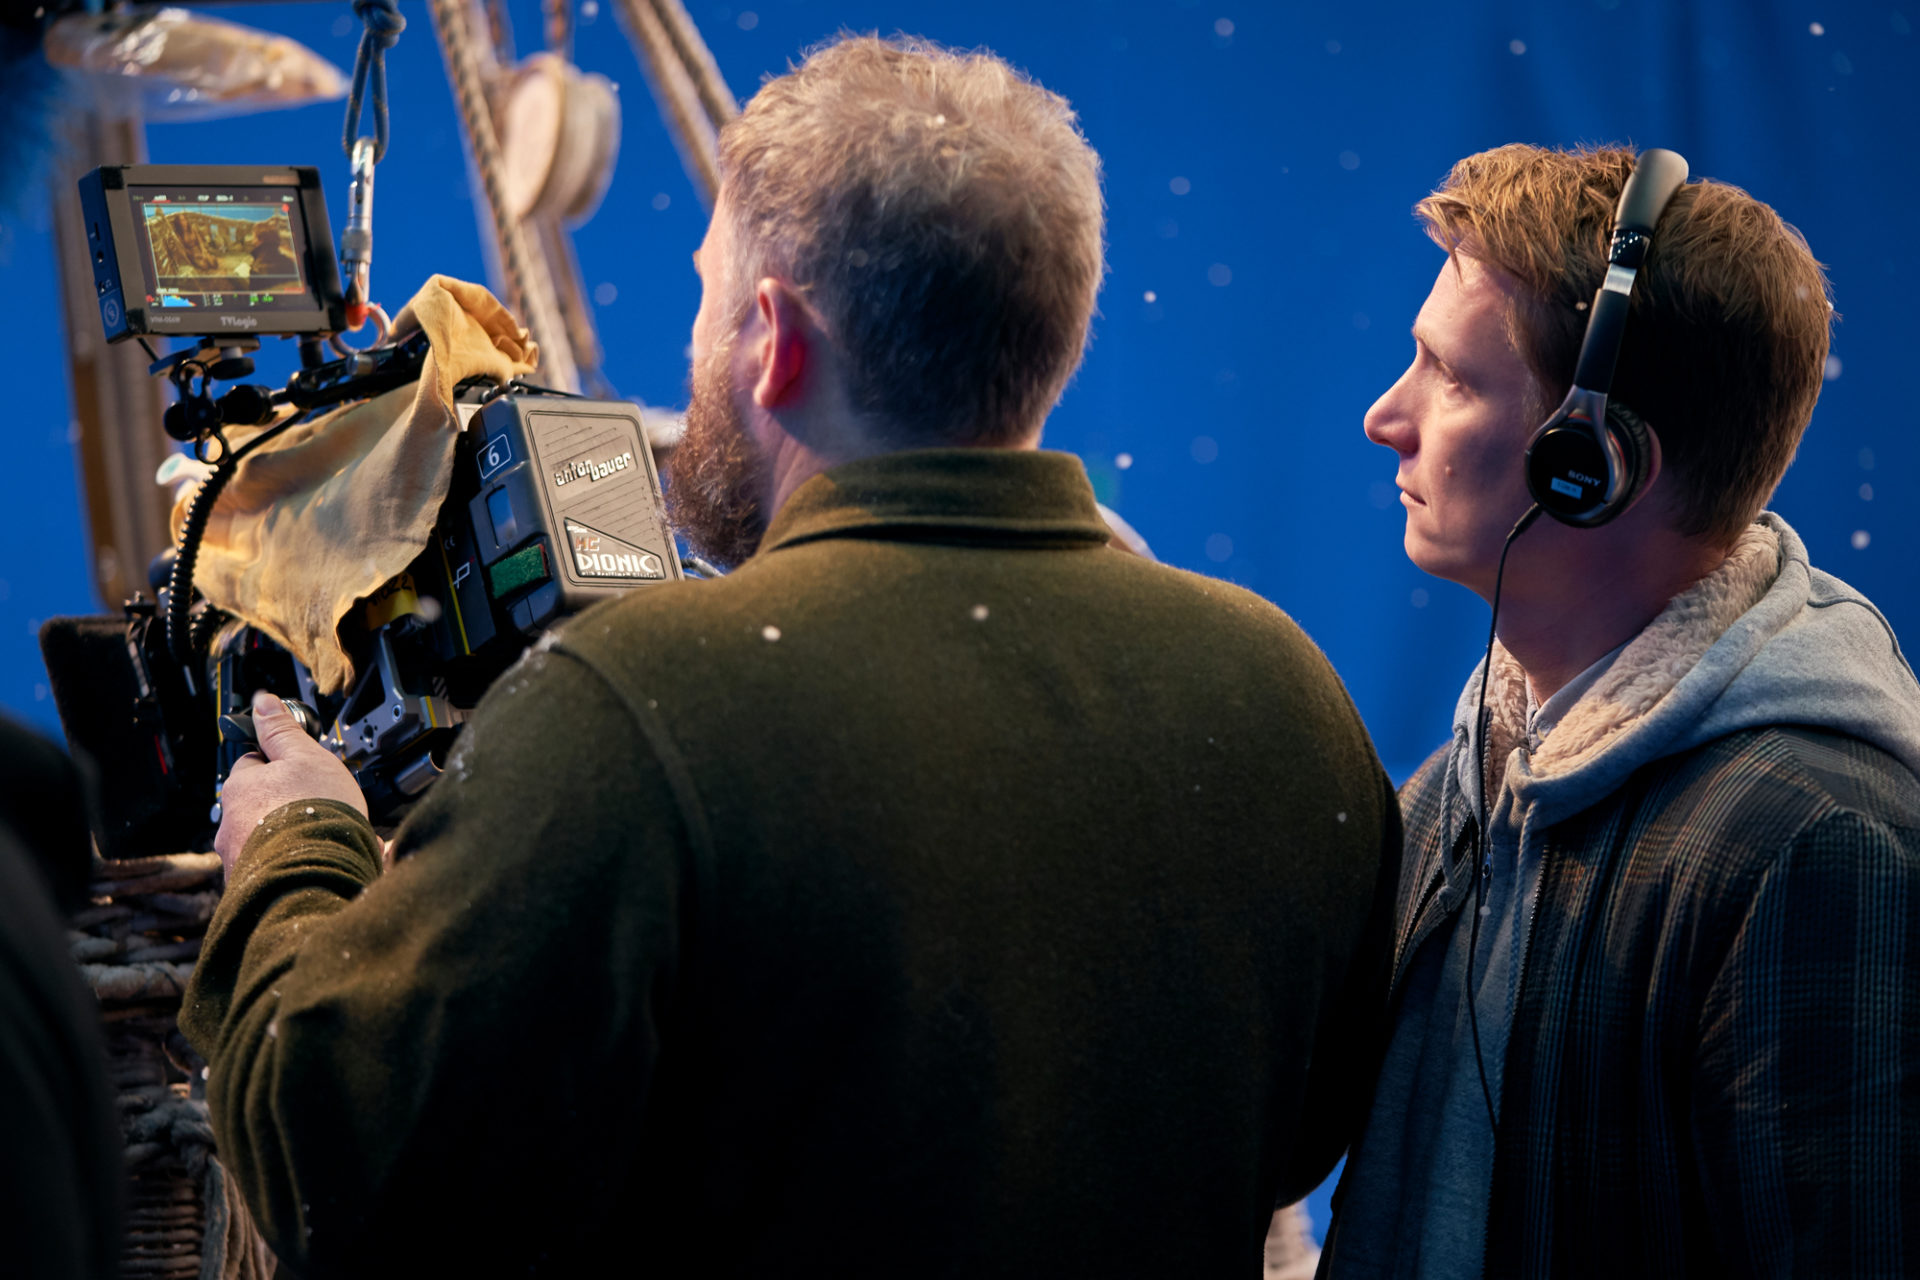 Cinematographer George Steel with Director Tom Harper on the set of THE AERONAUTS